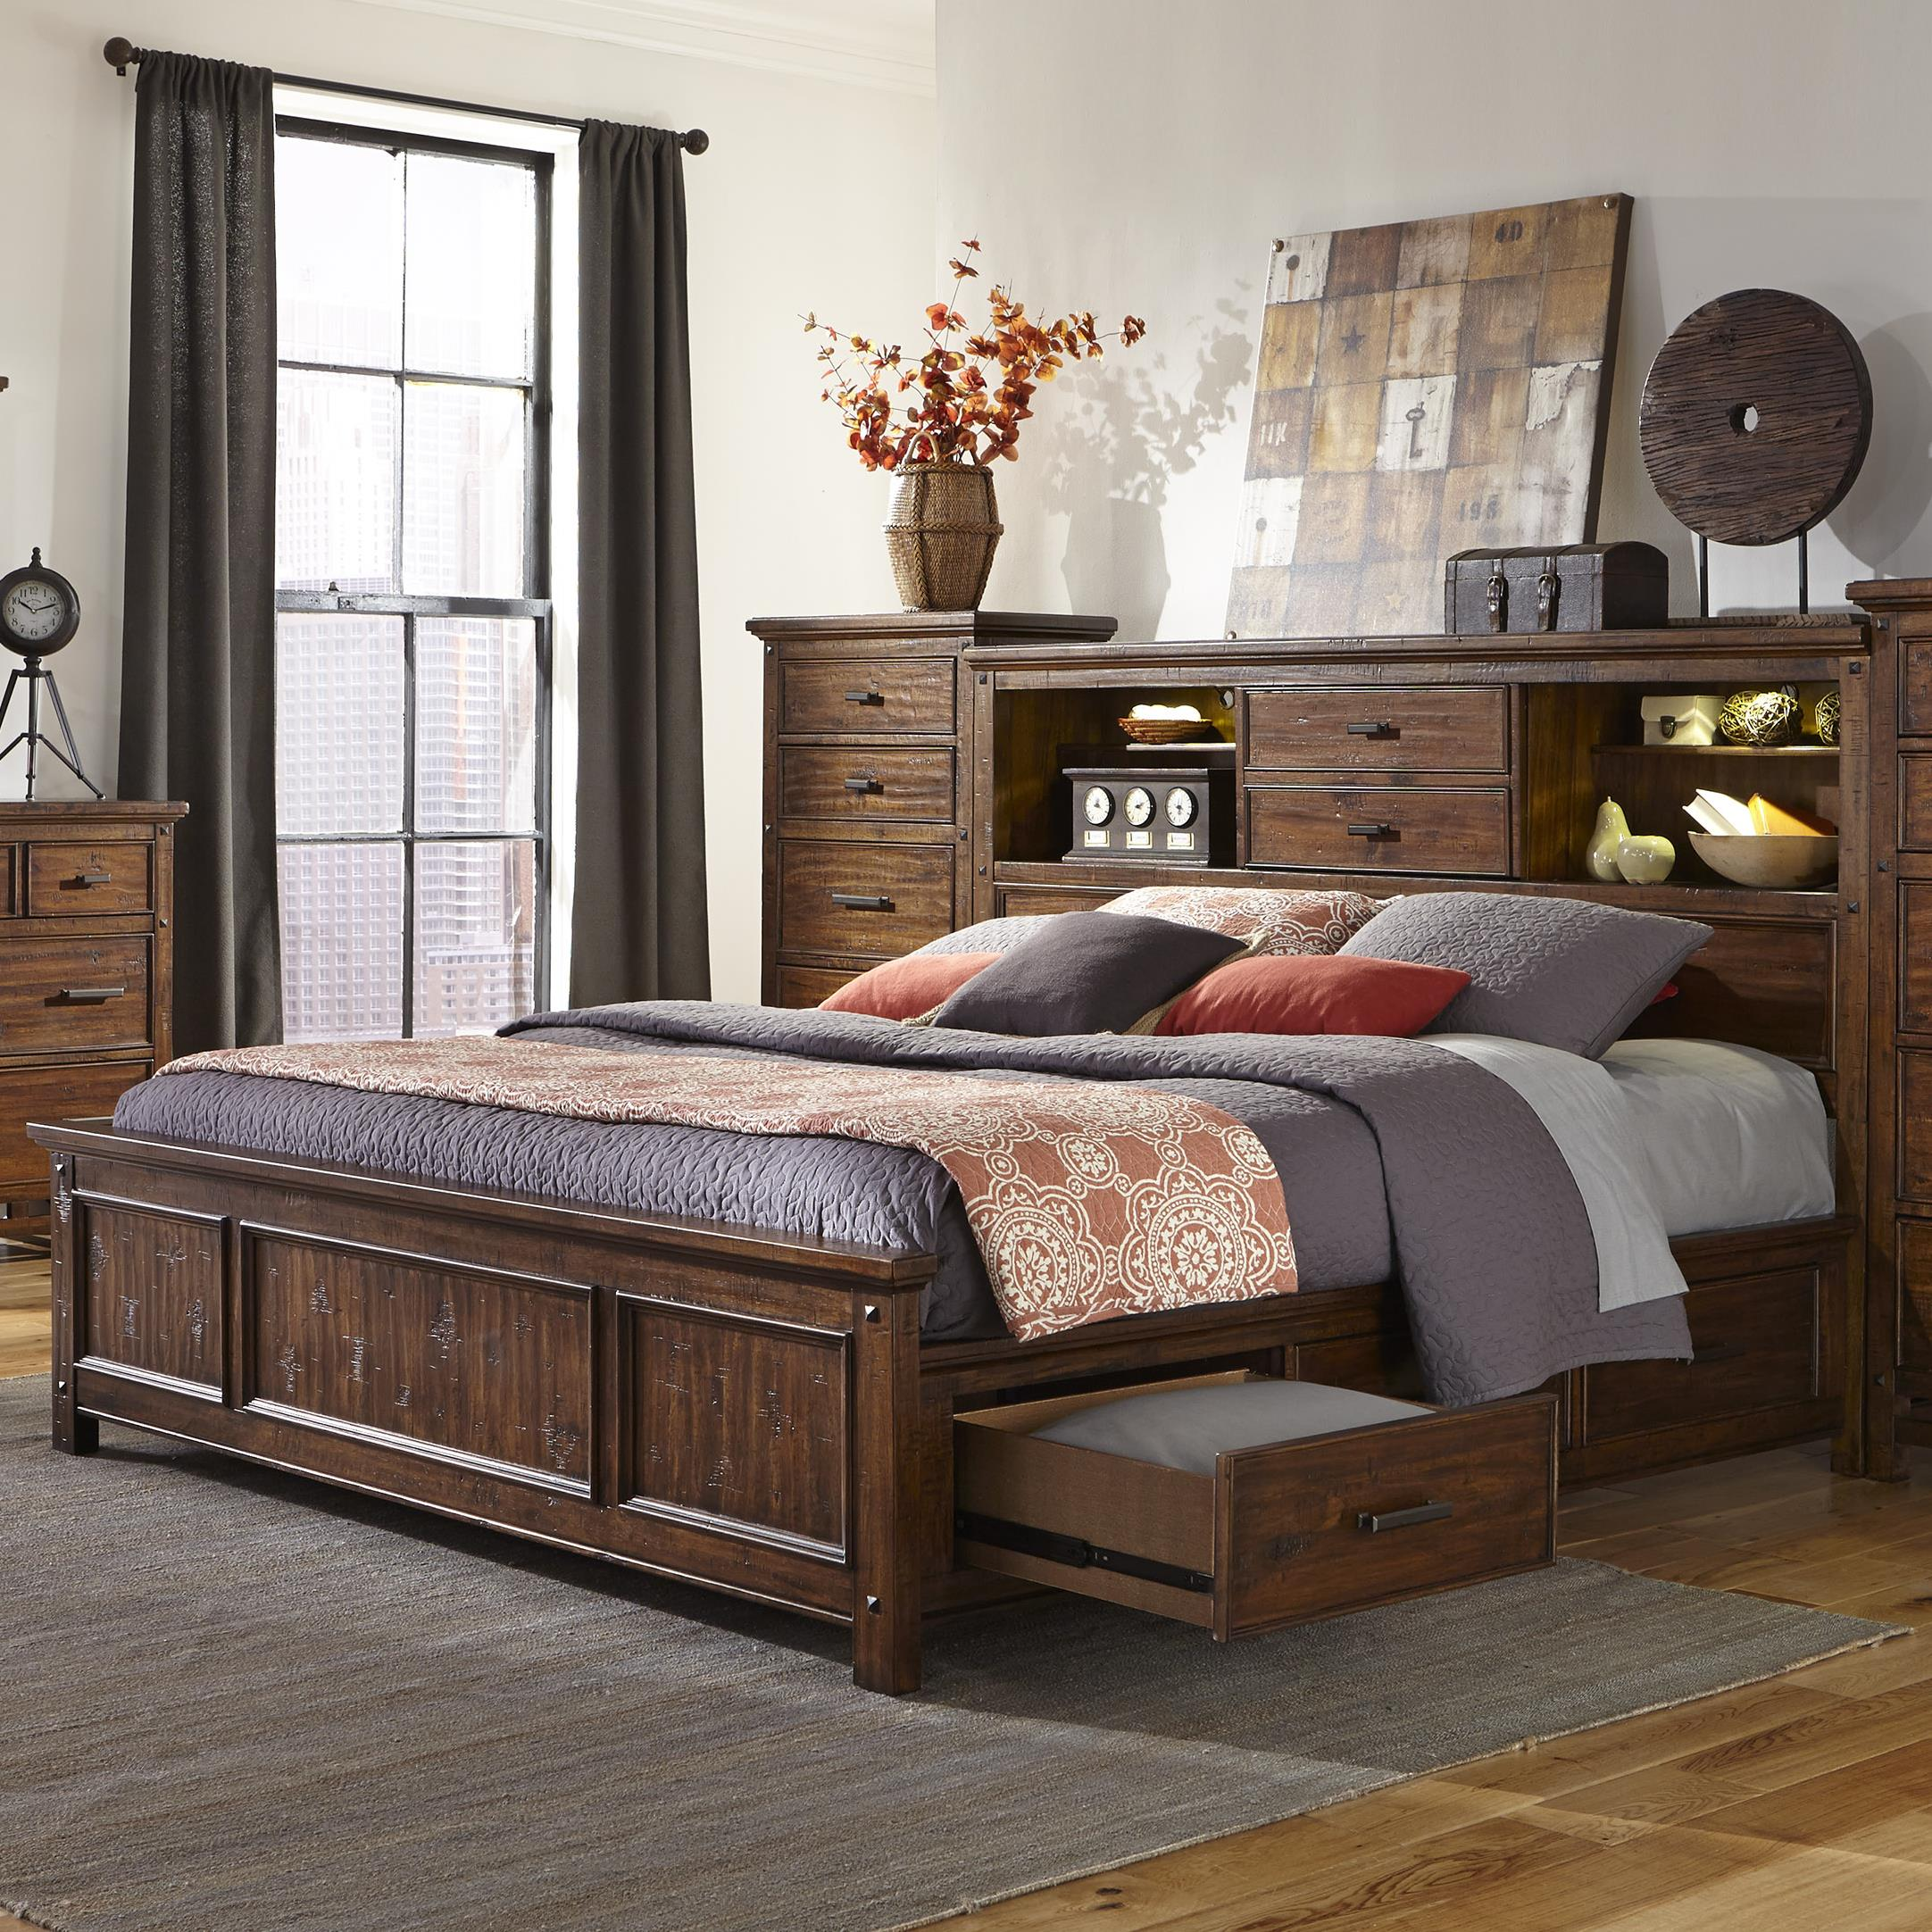 Wolf Creek Queen Bookcase Bed with Storage by Intercon at Wilson's Furniture